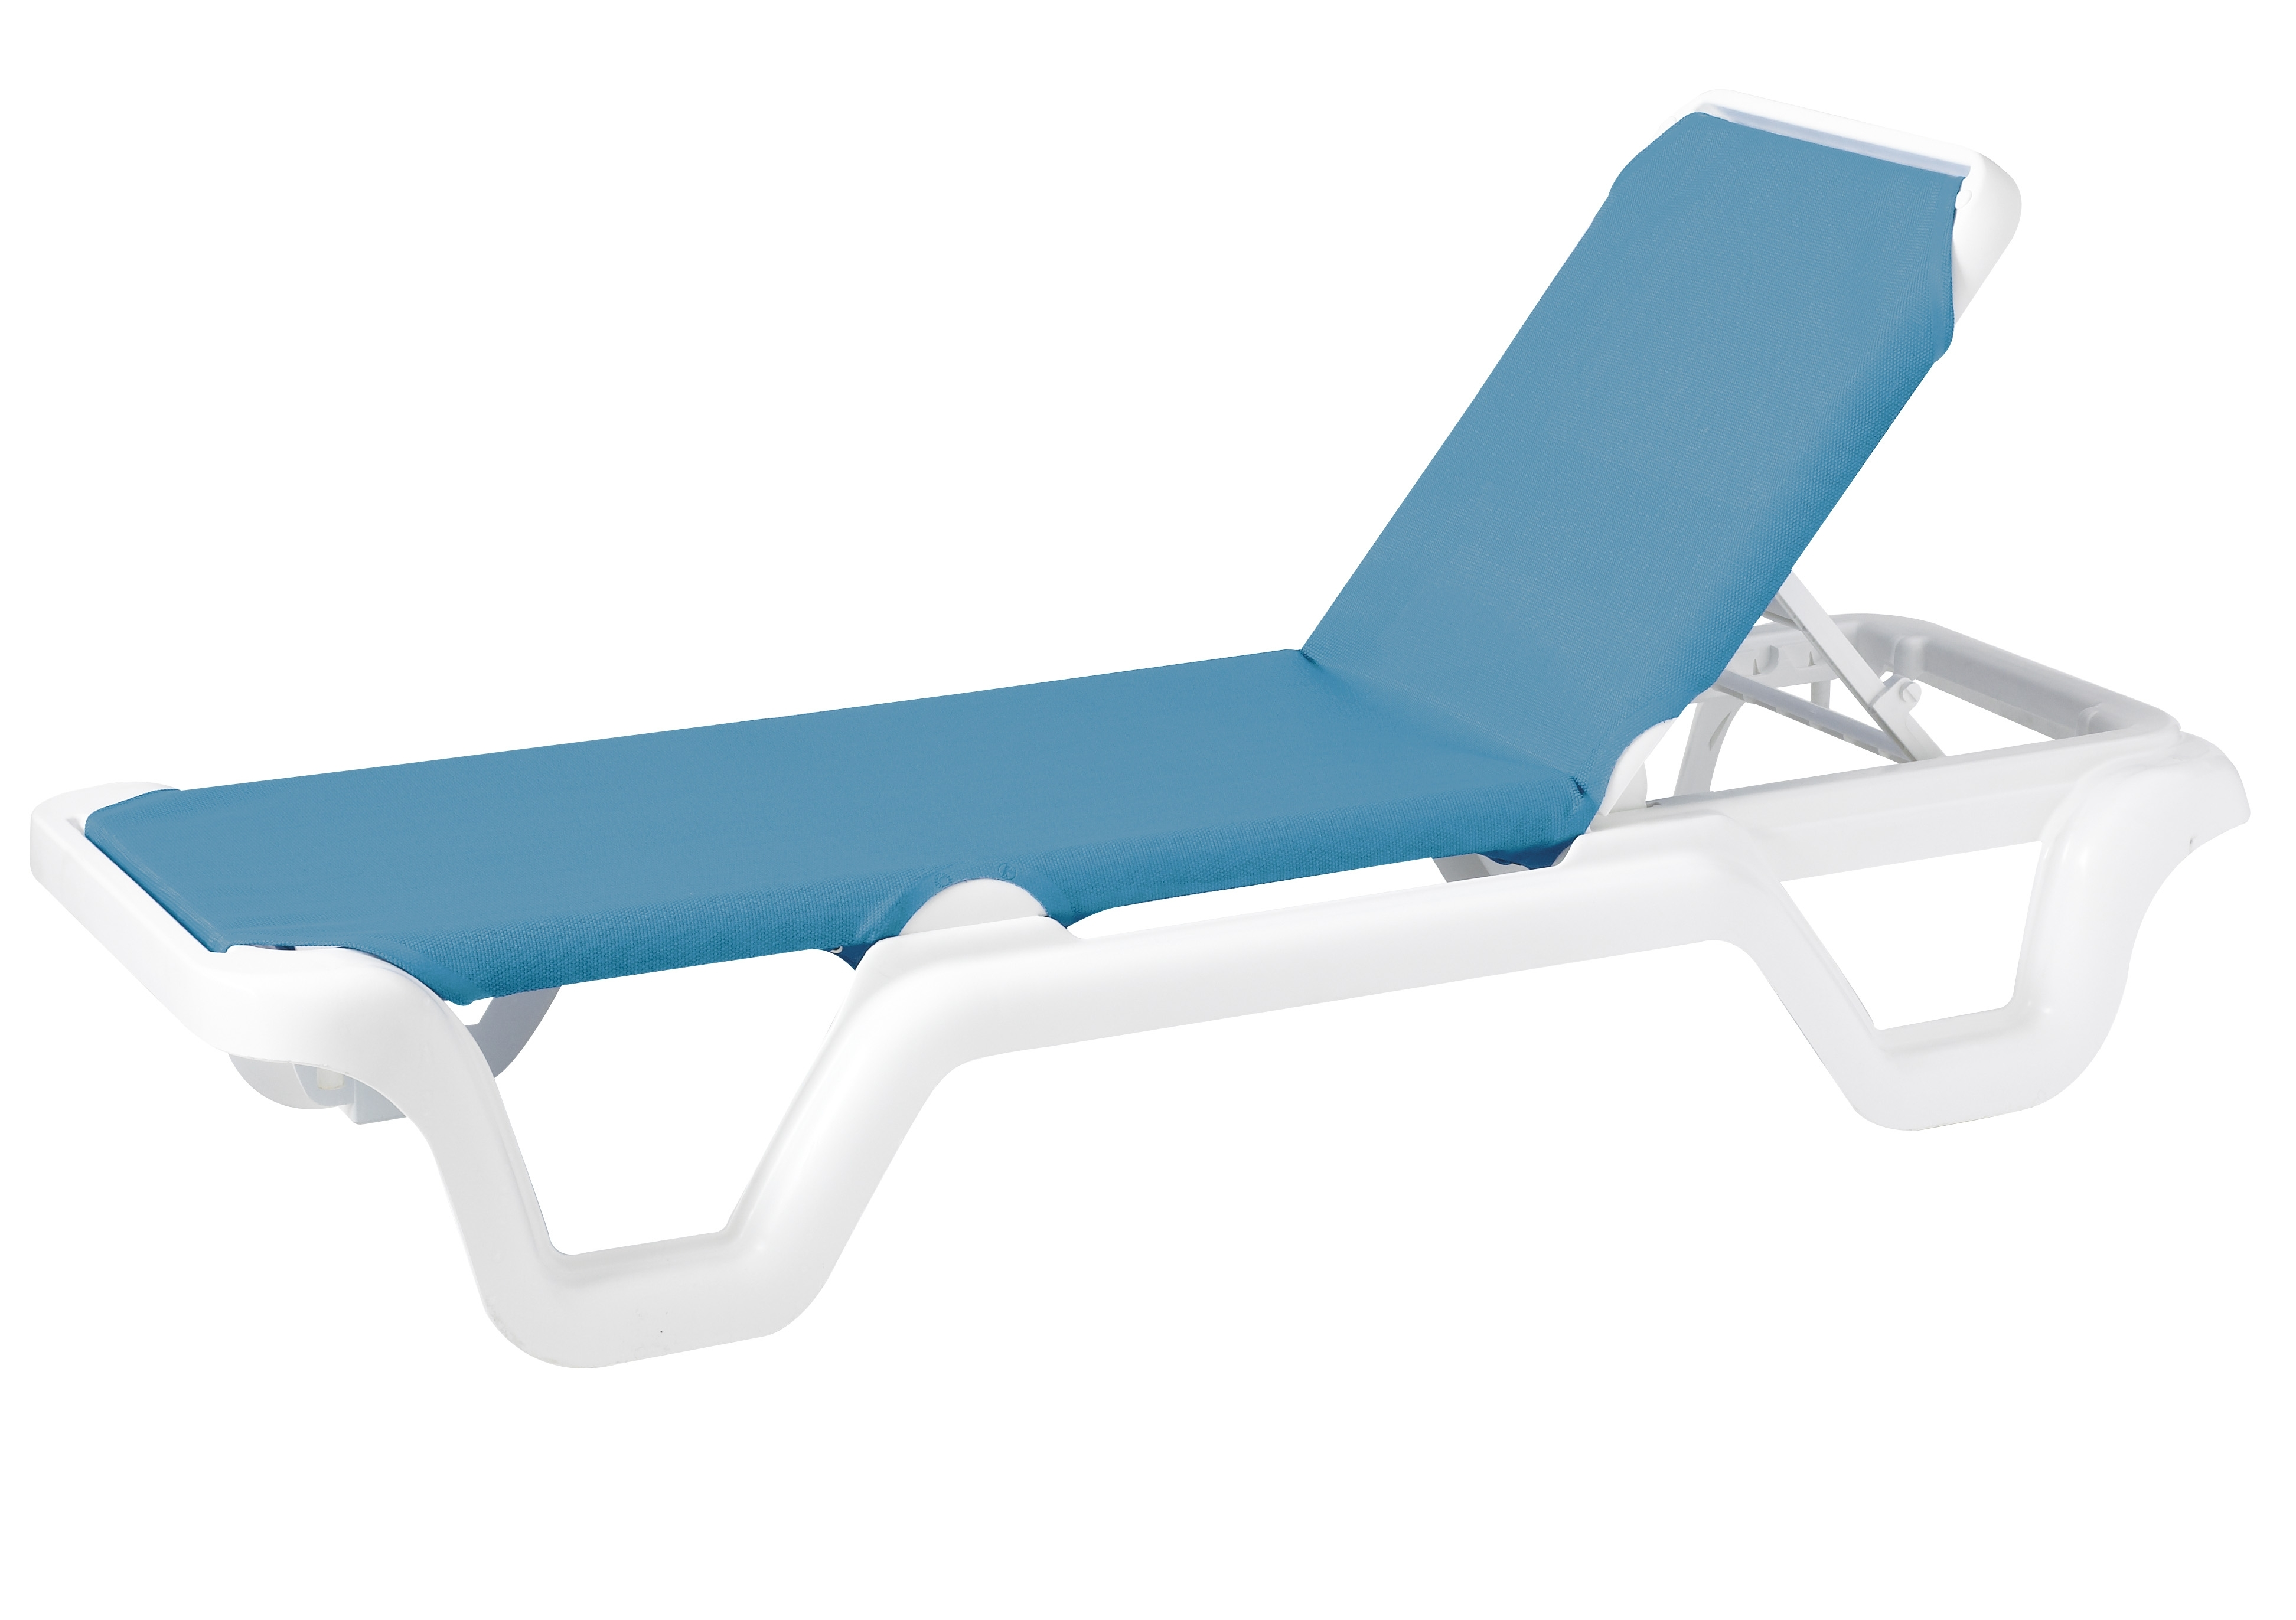 Grosfillex Marina Style Resin Sling Chaise Lounge Chair W/o Arms Pertaining To Most Recently Released Chaise Lounge Chairs Without Arms (View 11 of 15)